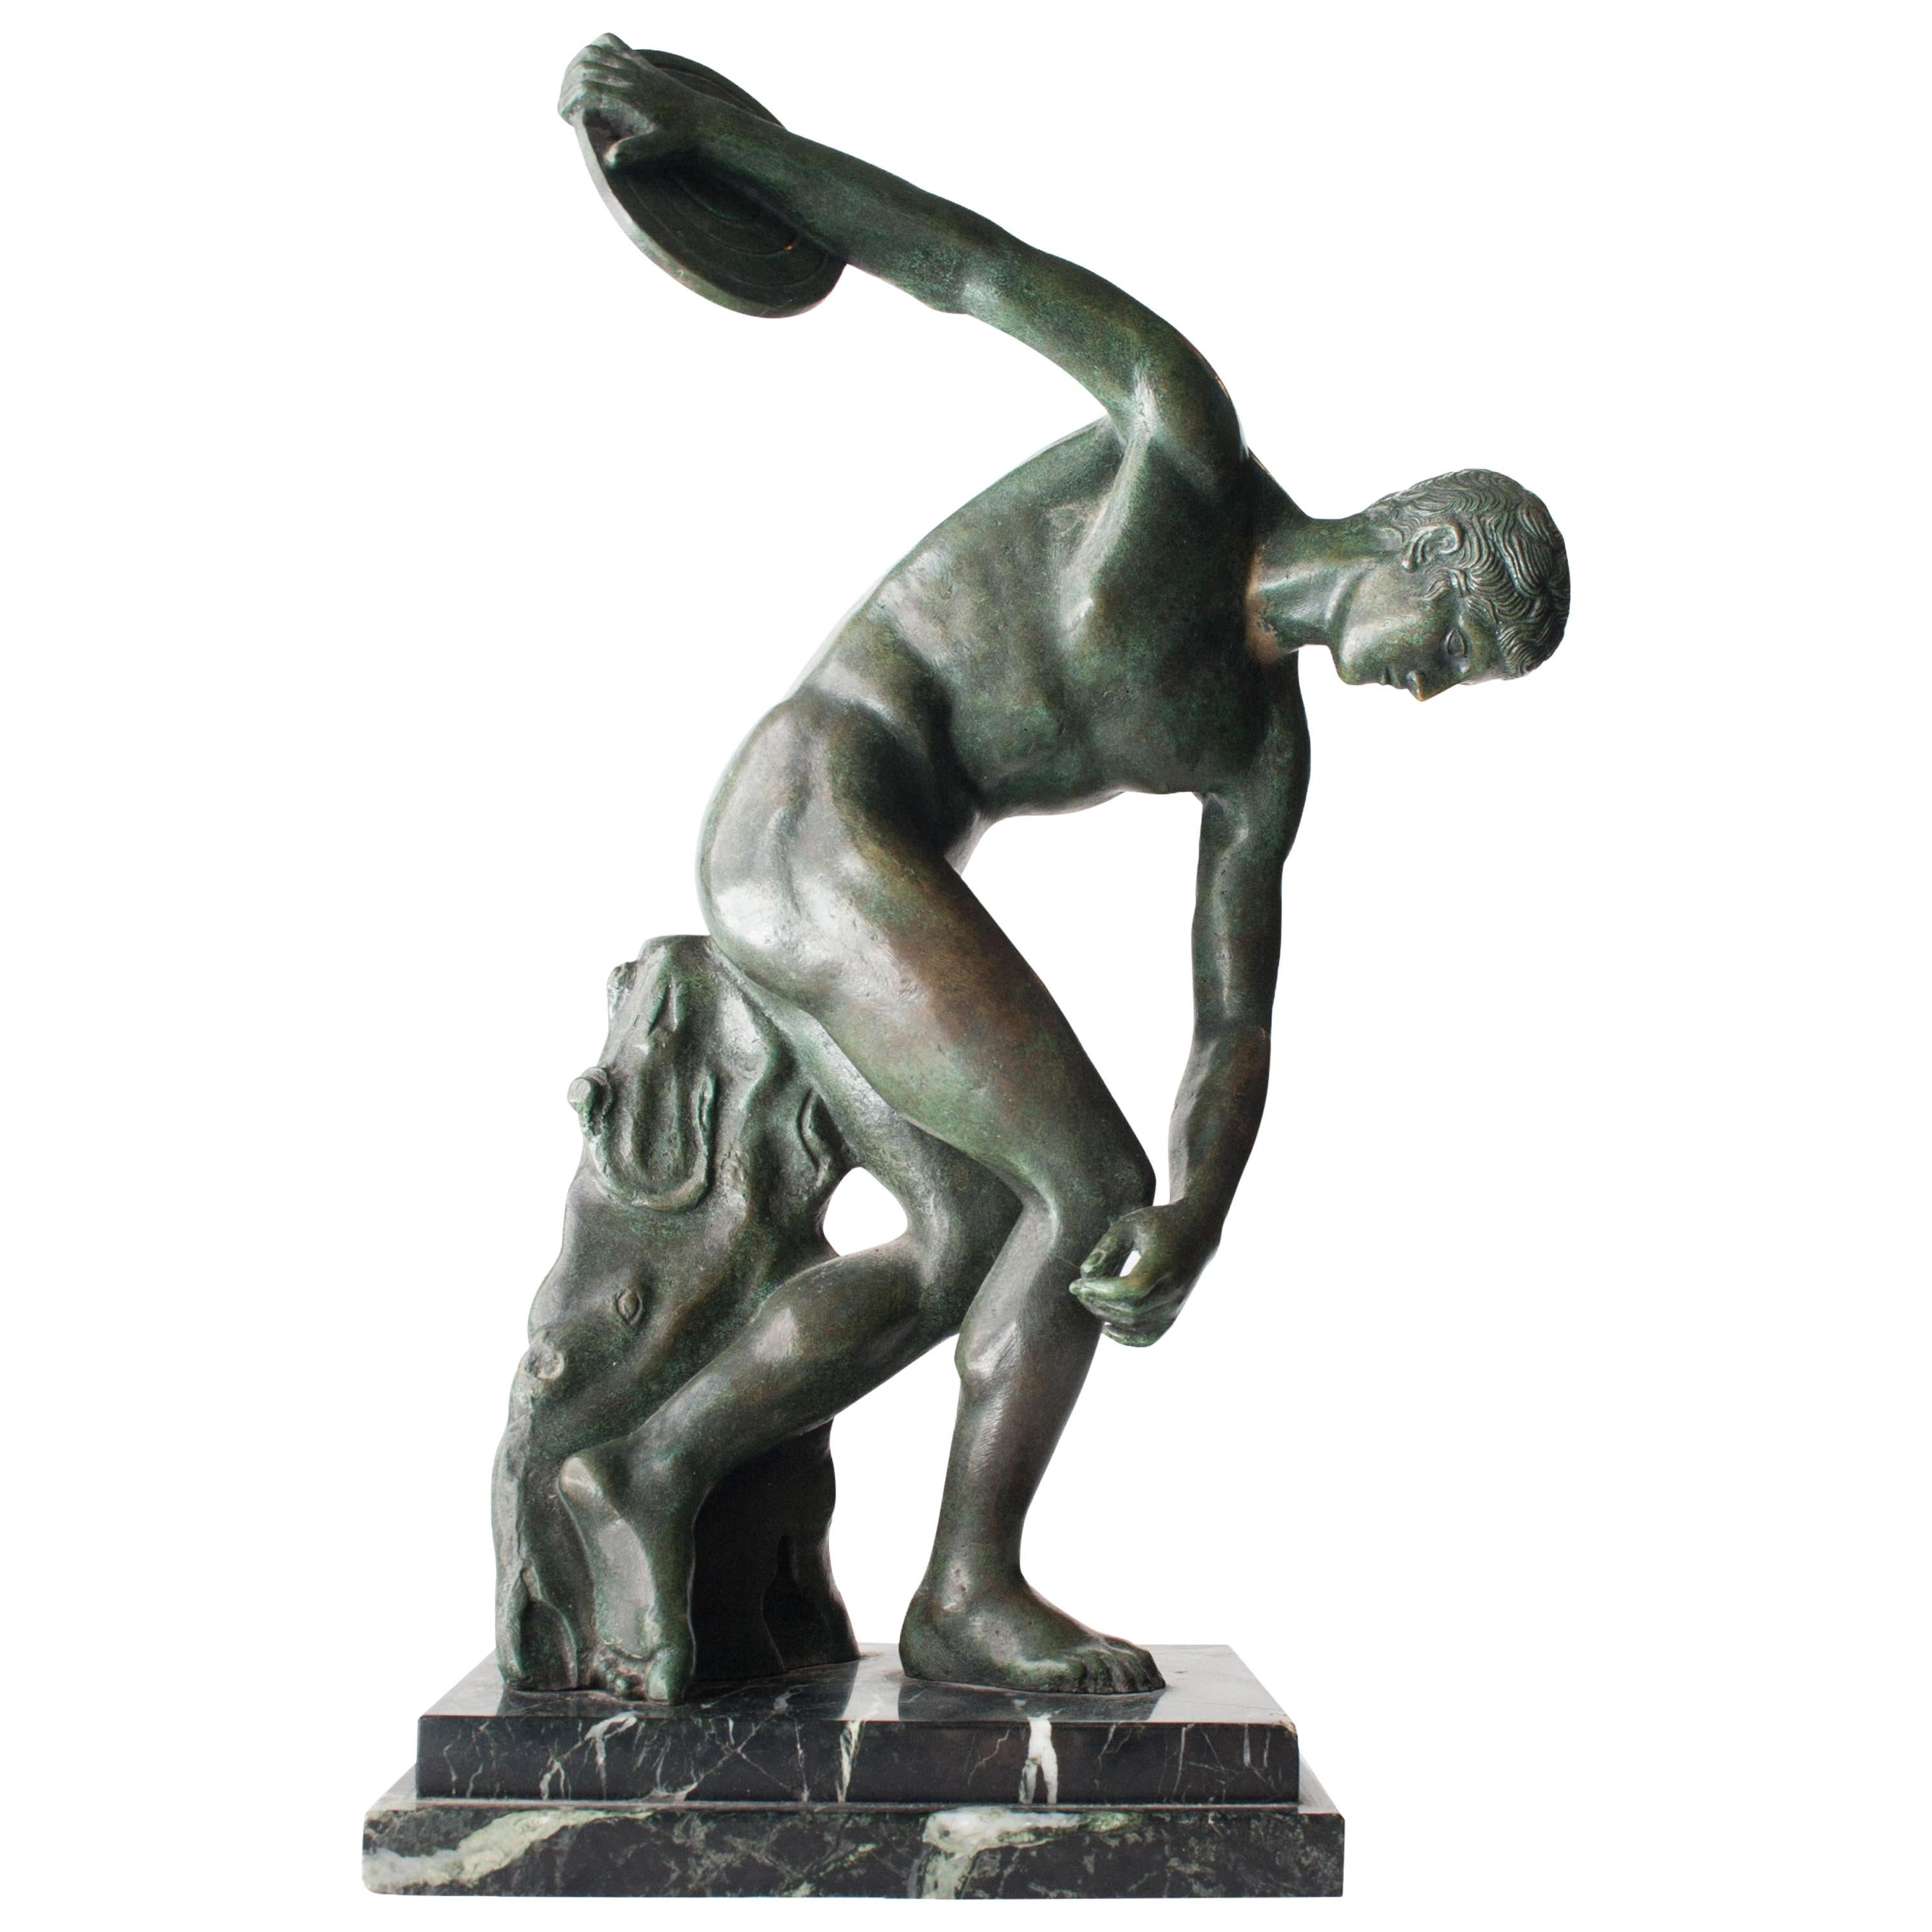 Art Deco Discobolo Bronze Green Indian Marble French Sculpture, 1920